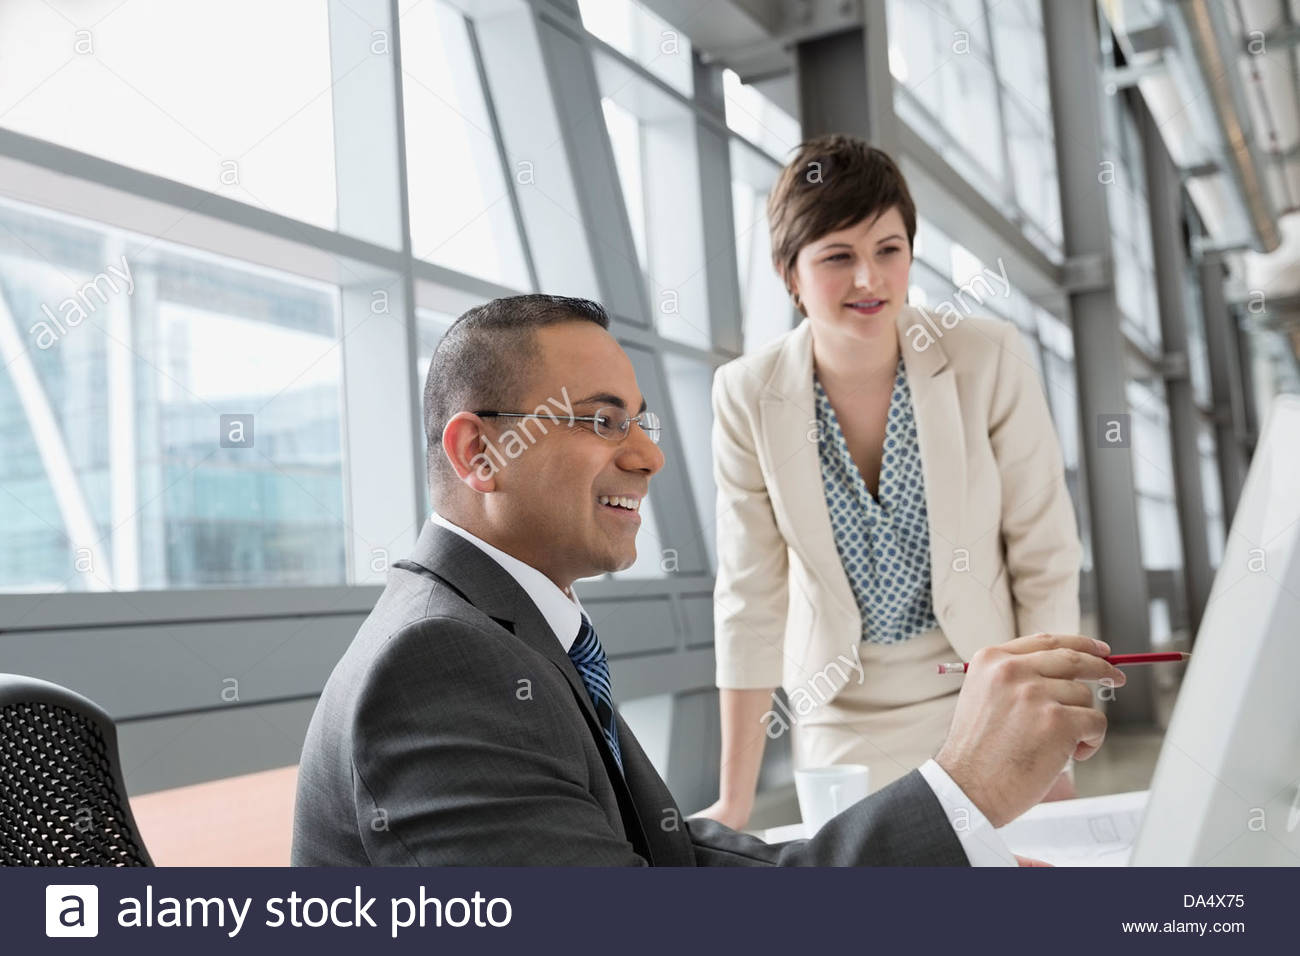 Businessman pointing to computer monitor in office building - Stock Image